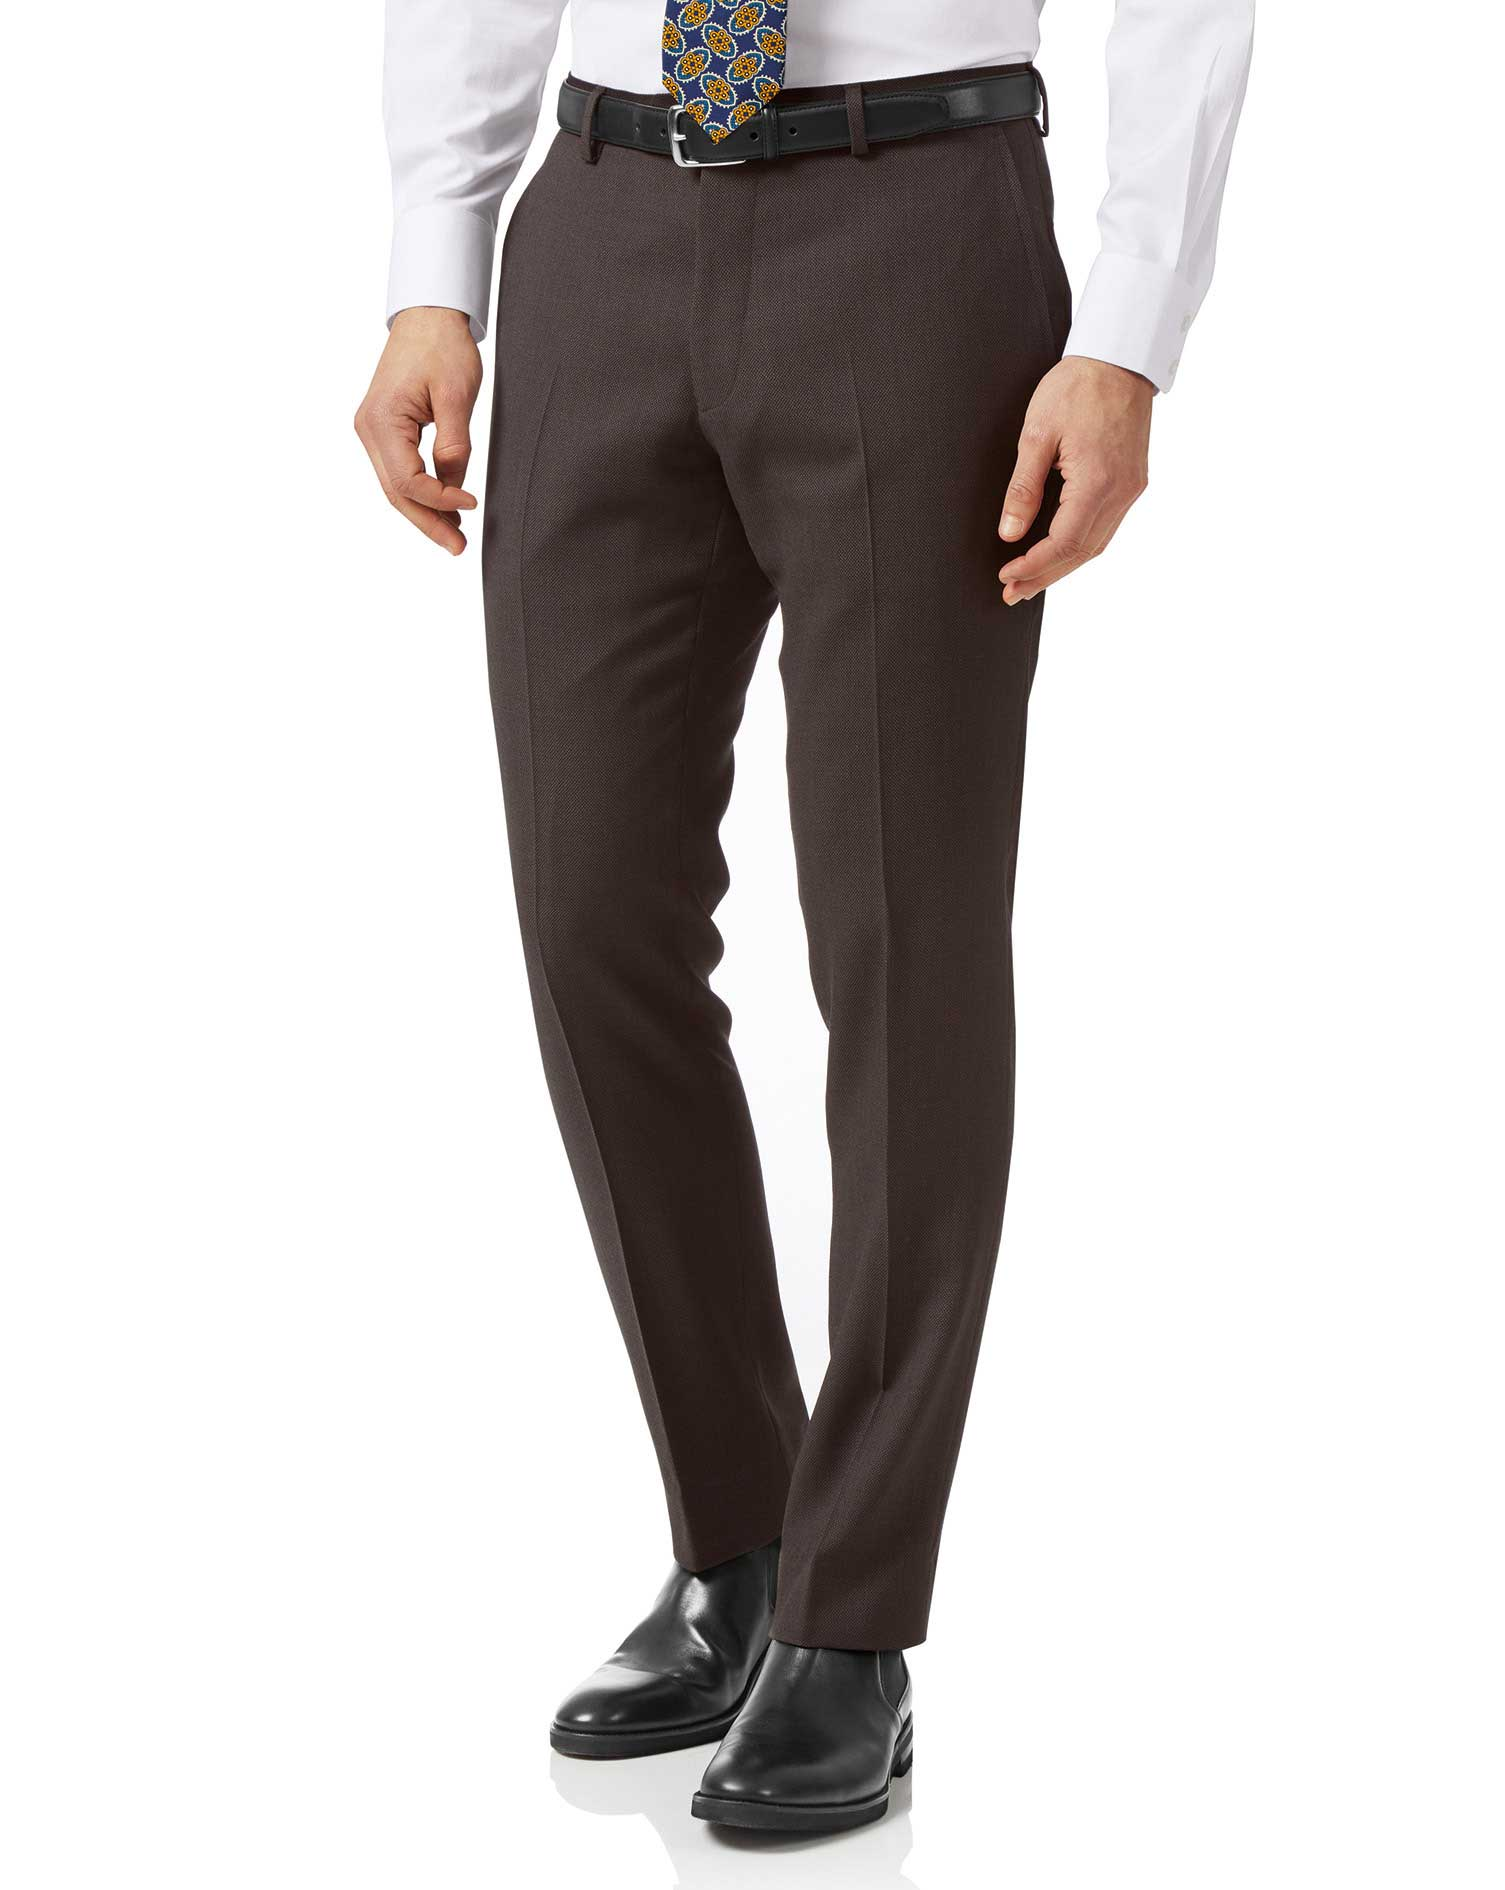 Brown Slim Fit Birdseye Travel Suit Trousers Size W34 L34 by Charles Tyrwhitt